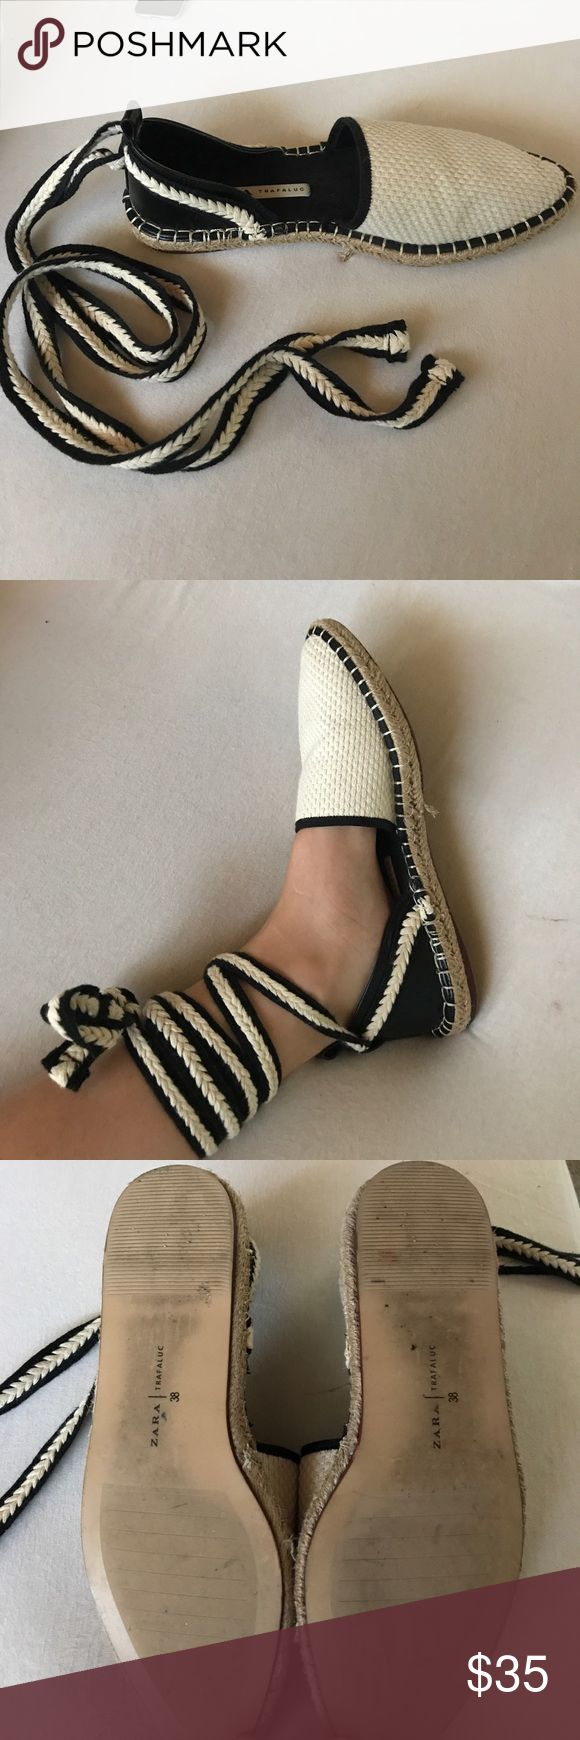 Zara black and white Espadrilles! Size 38 Worn a few times. Super comfortable. Goes with everything! Size 38 but I wear a size 7.5 in everything and these fit perfectly! Zara Shoes Espadrilles